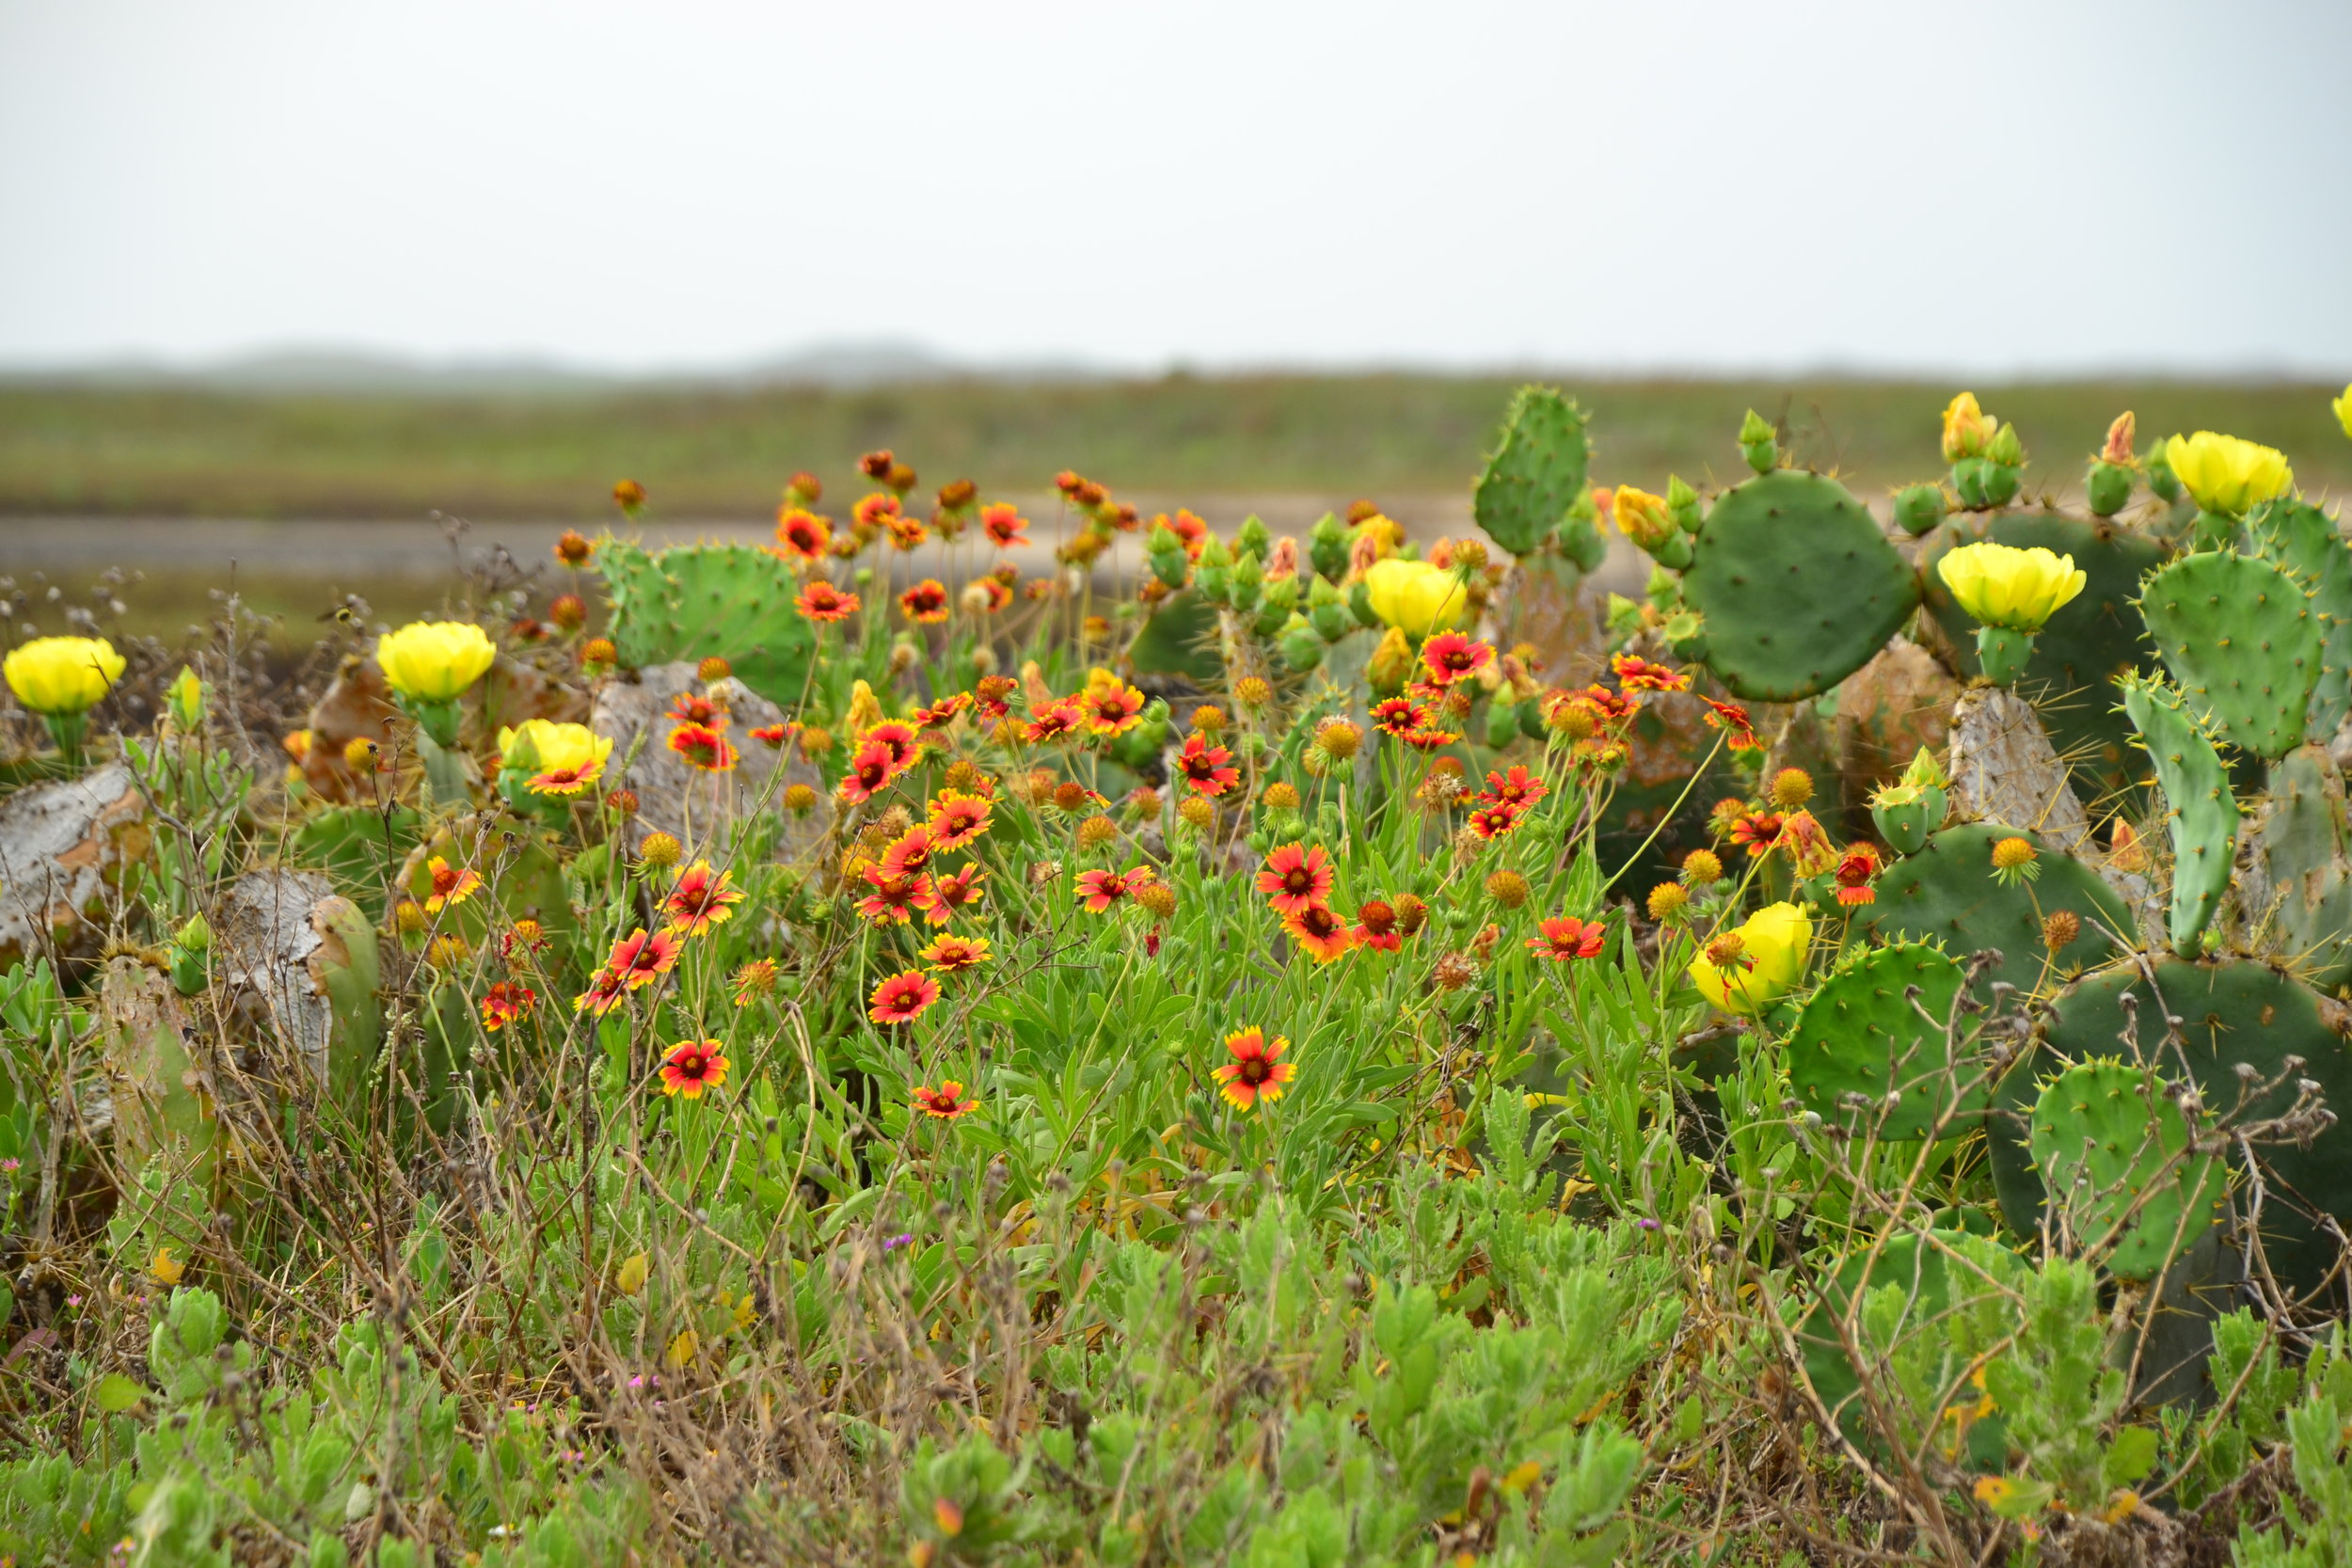 30 knot SE gusts, Barn swallows migrating, Prickly Pear cactus in bloom - Padre Island National Seashore